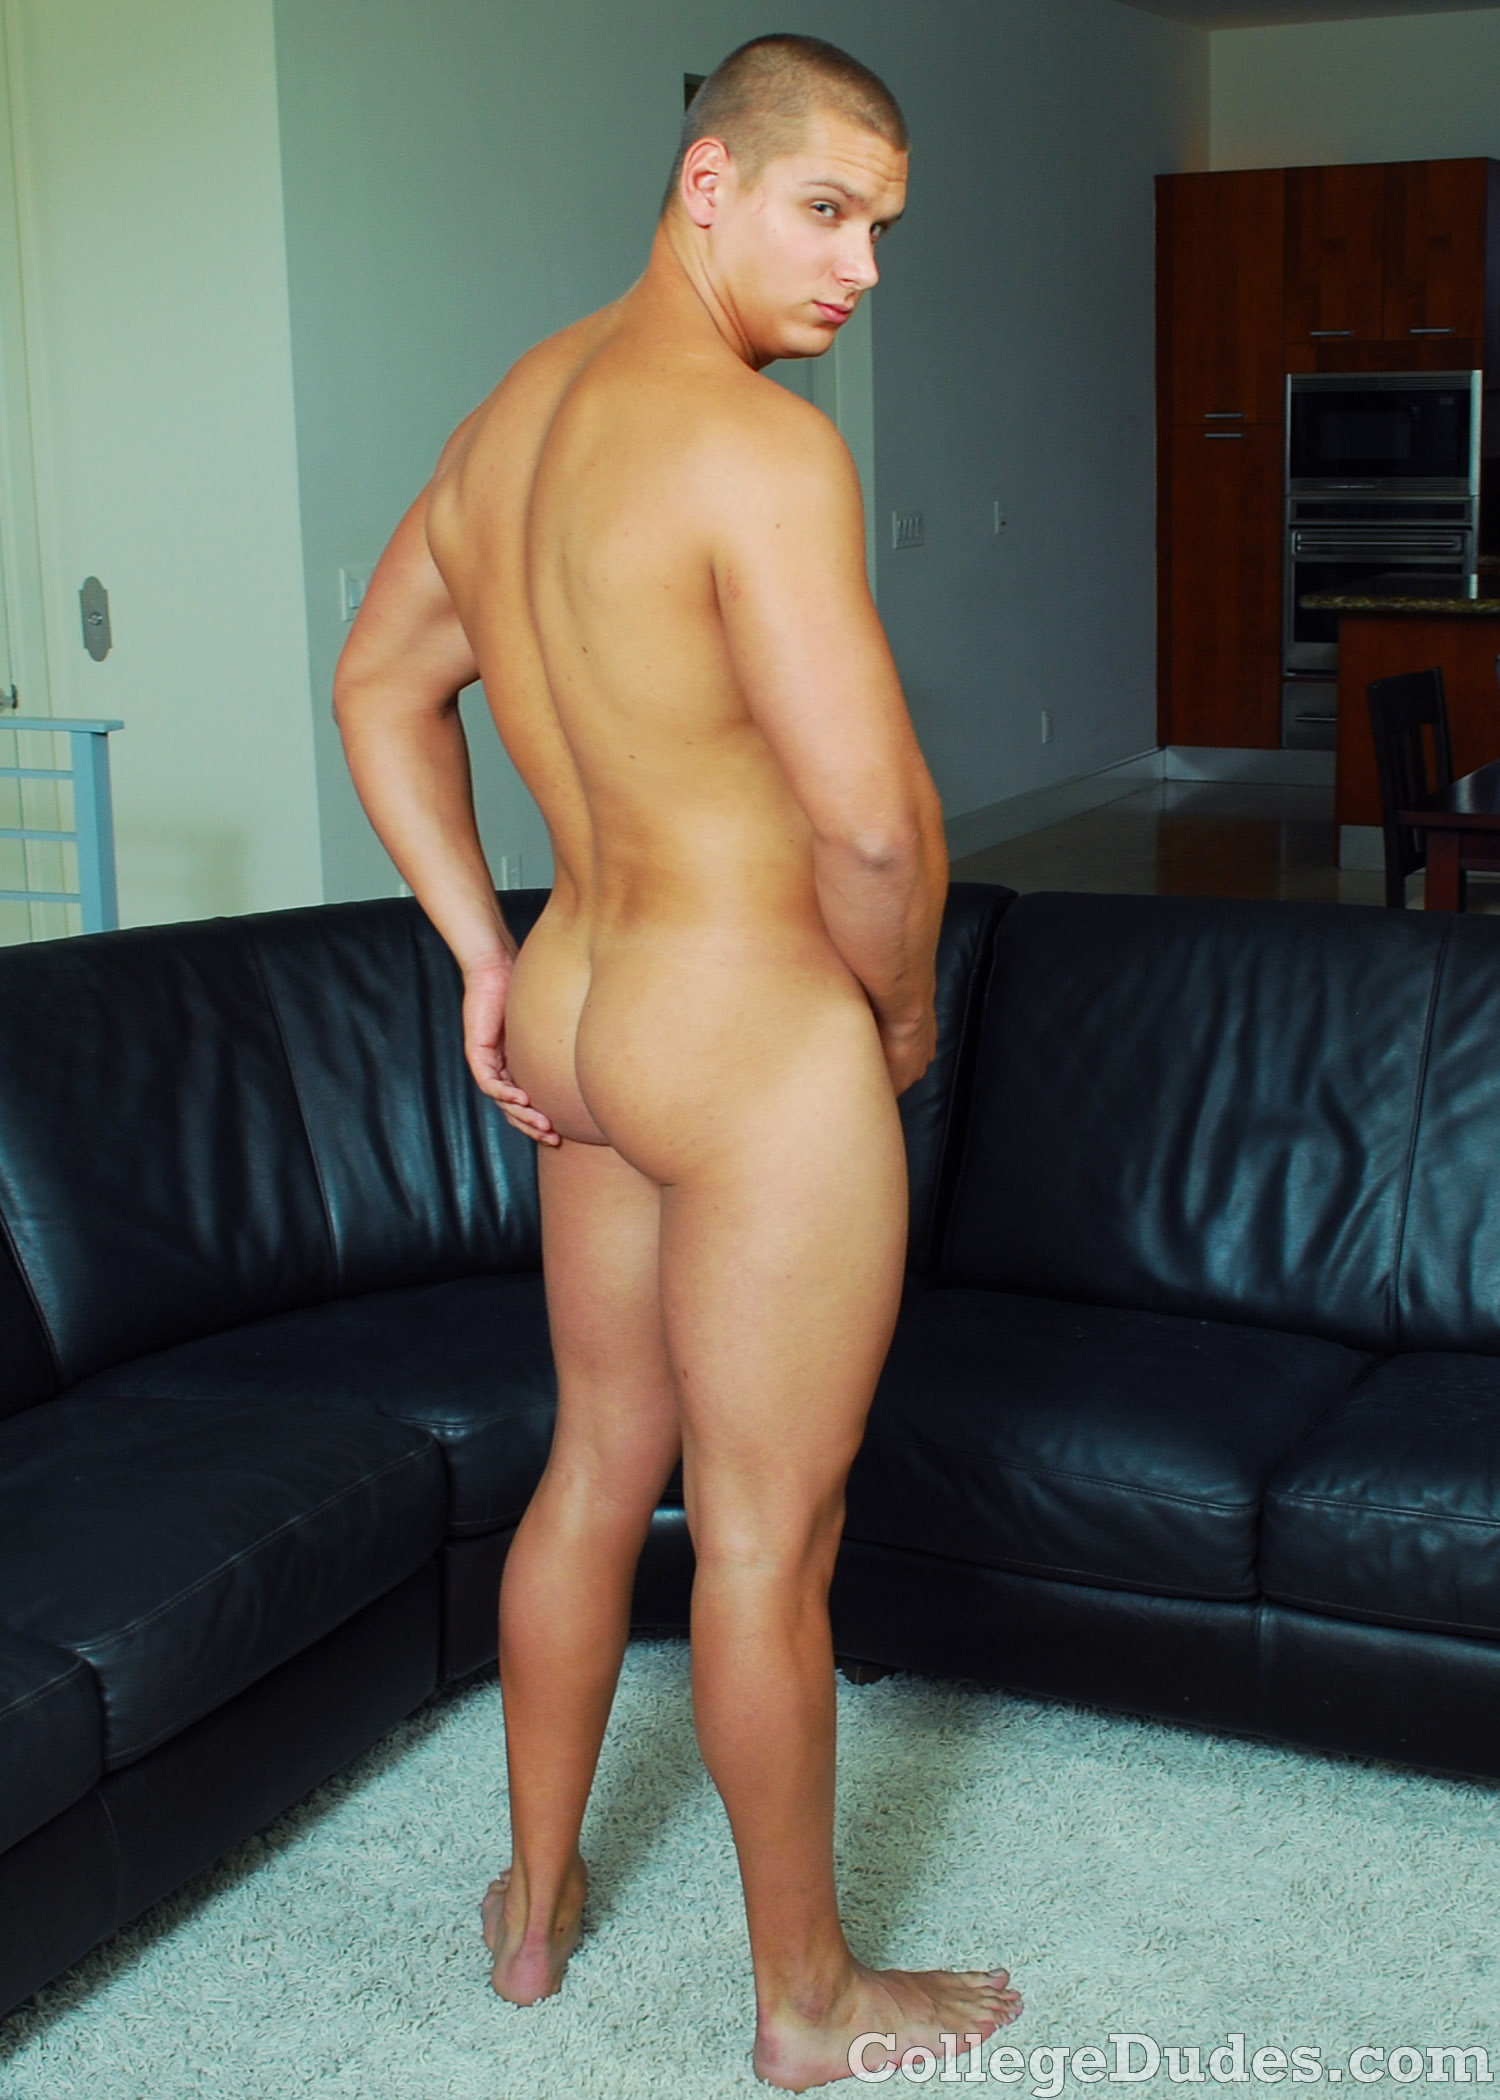 Naked amateur straight men gay when hunky